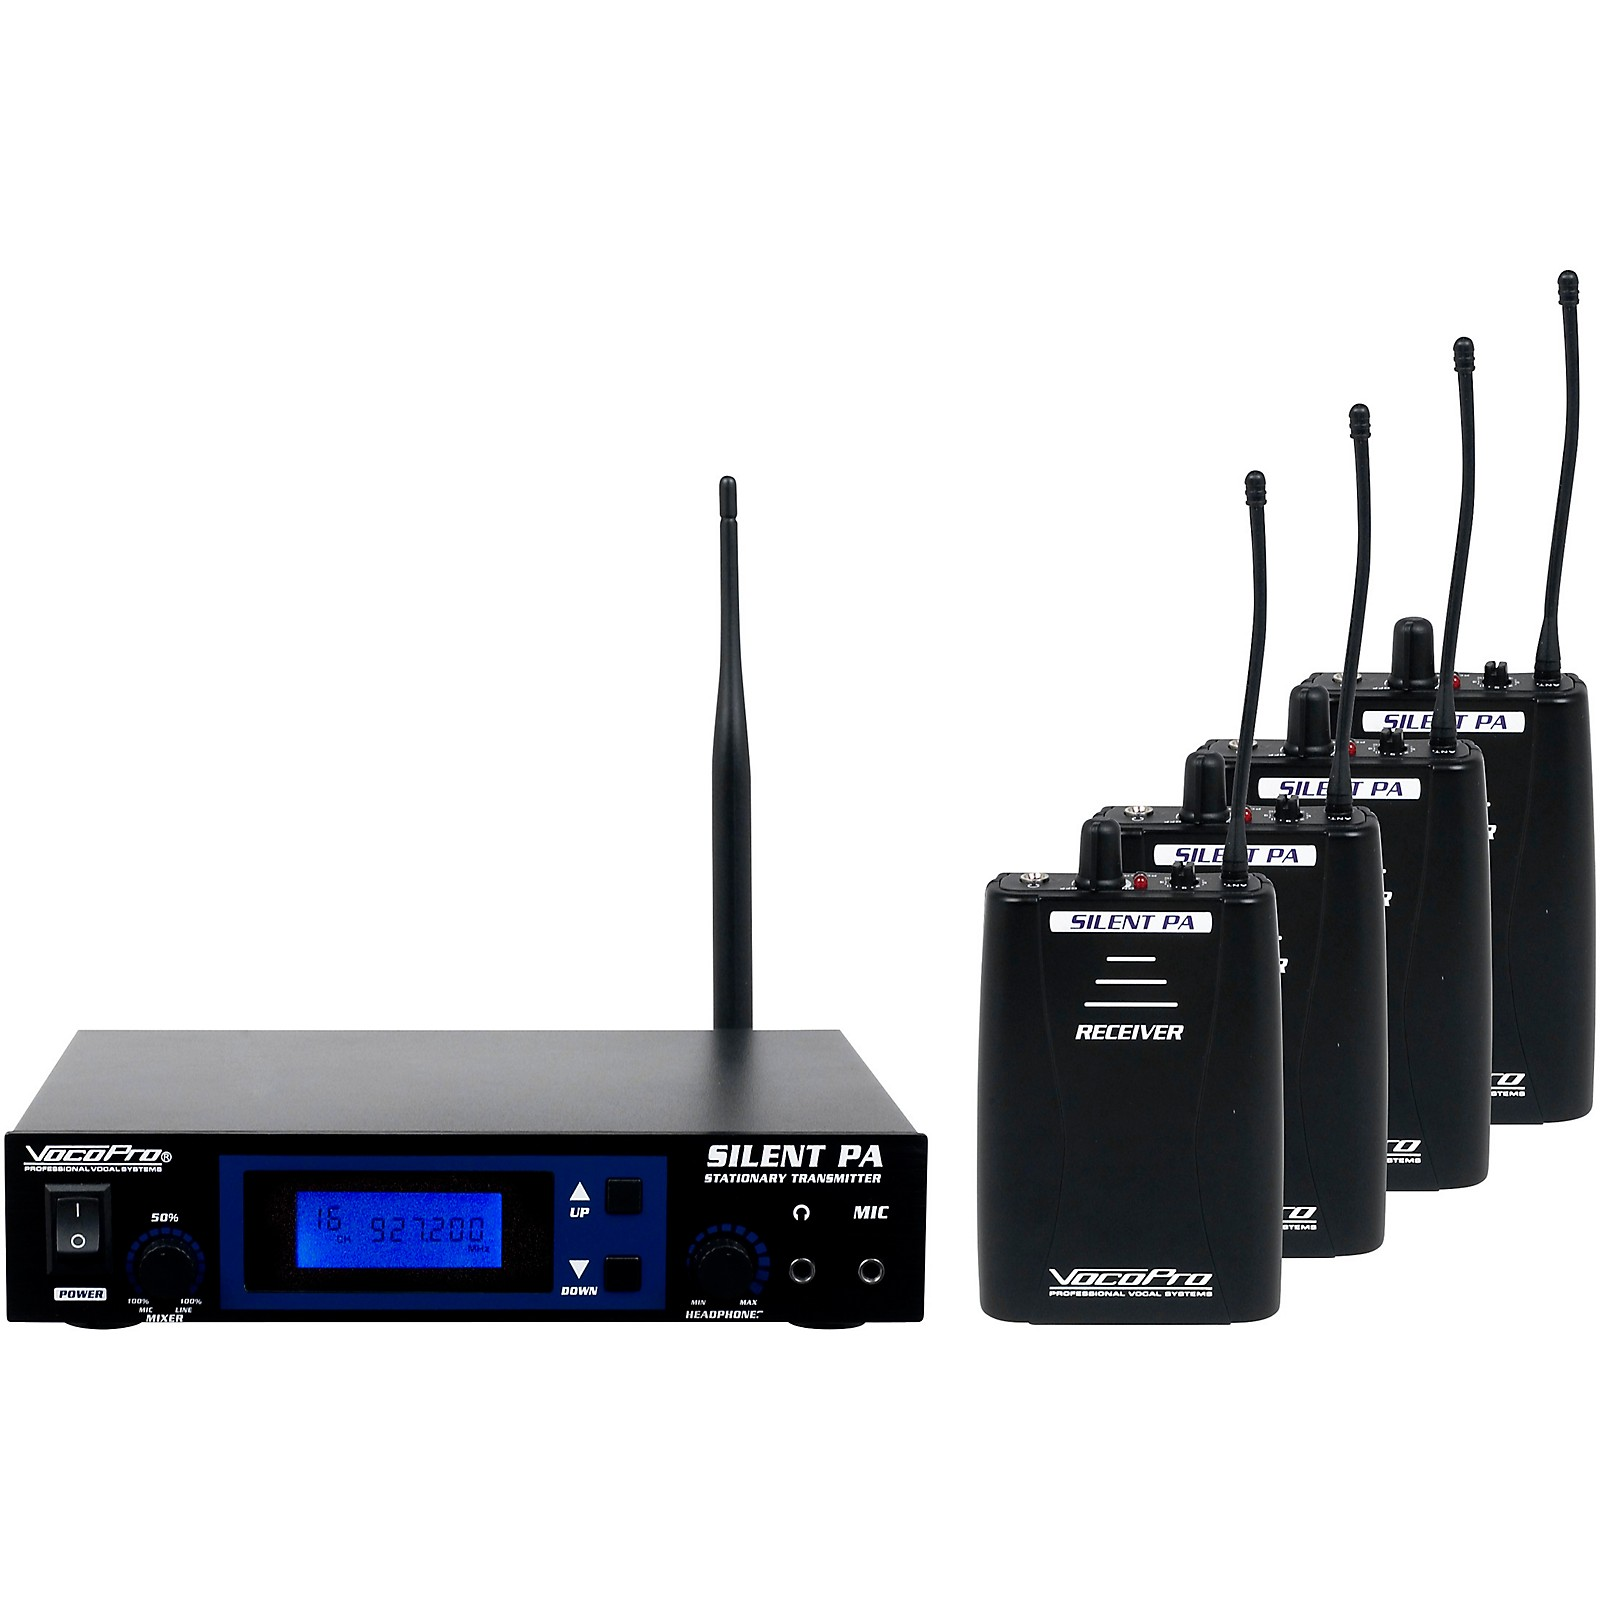 Open Box VocoPro SilentPA-PRACTICE 16CH UHF Wireless Audio Broadcast System (Stationary Transmitter with four bodypack receivers)